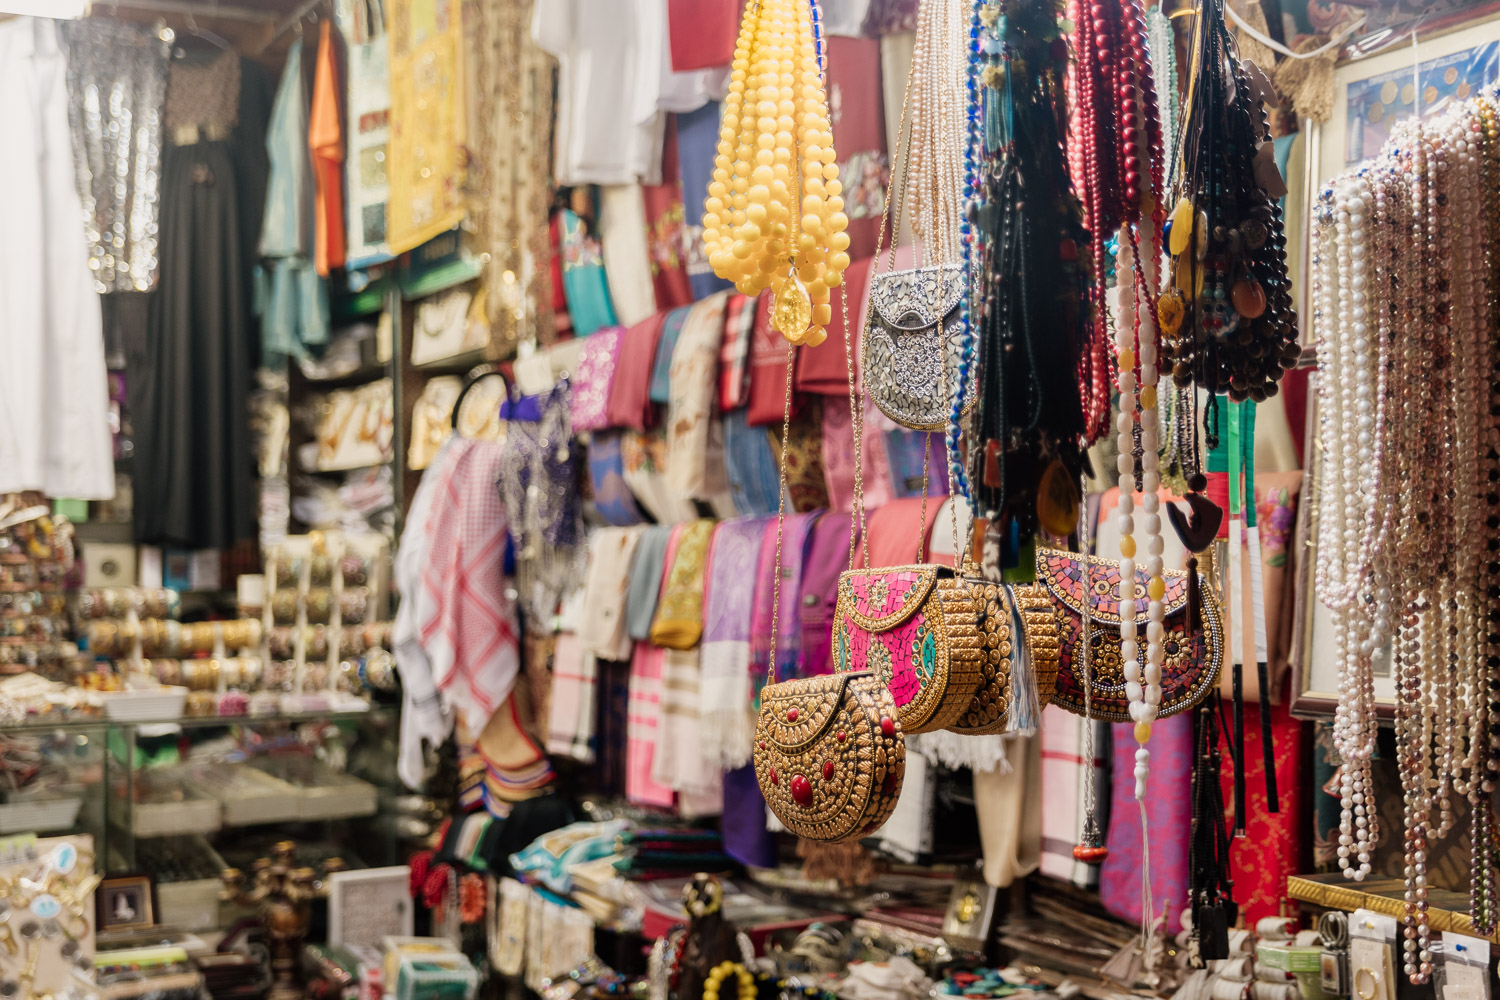 Local souvenirs and fashion finds at Souq Al Arsah